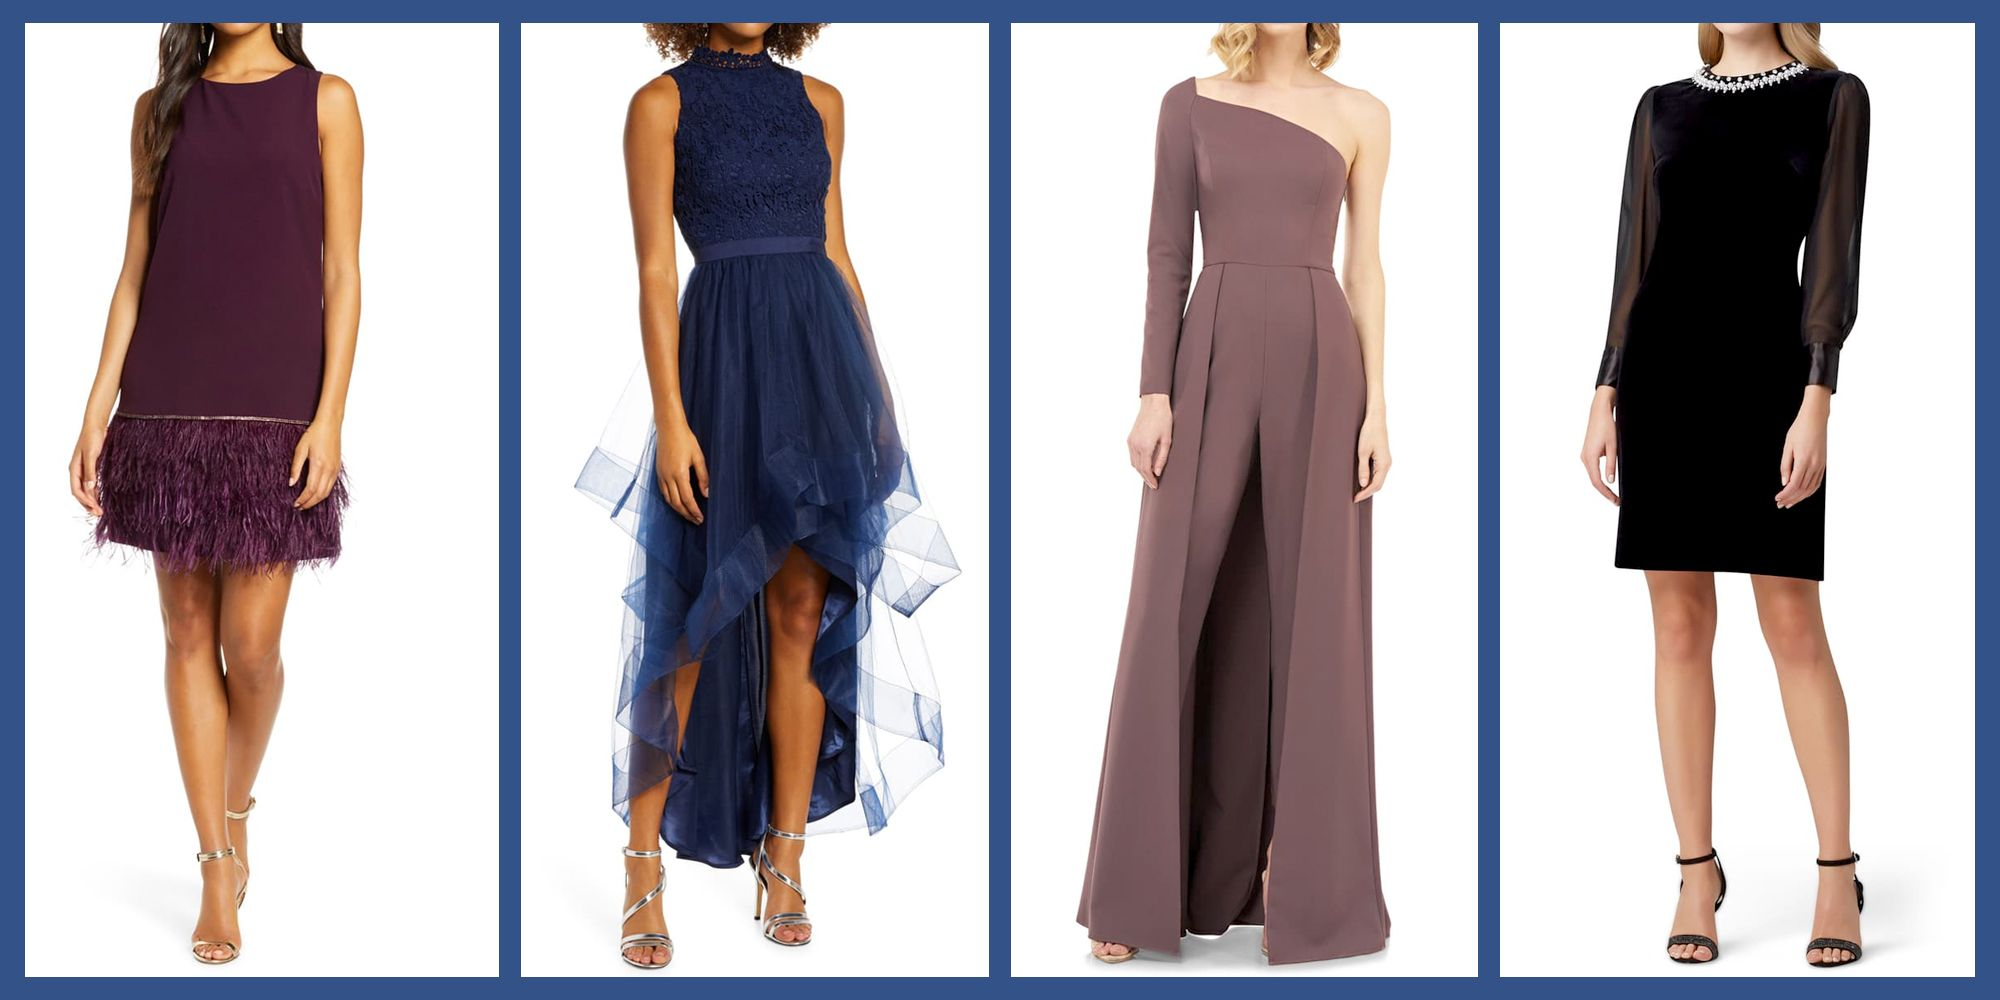 18 Best Winter Wedding Guest Dresses , What to Wear to a